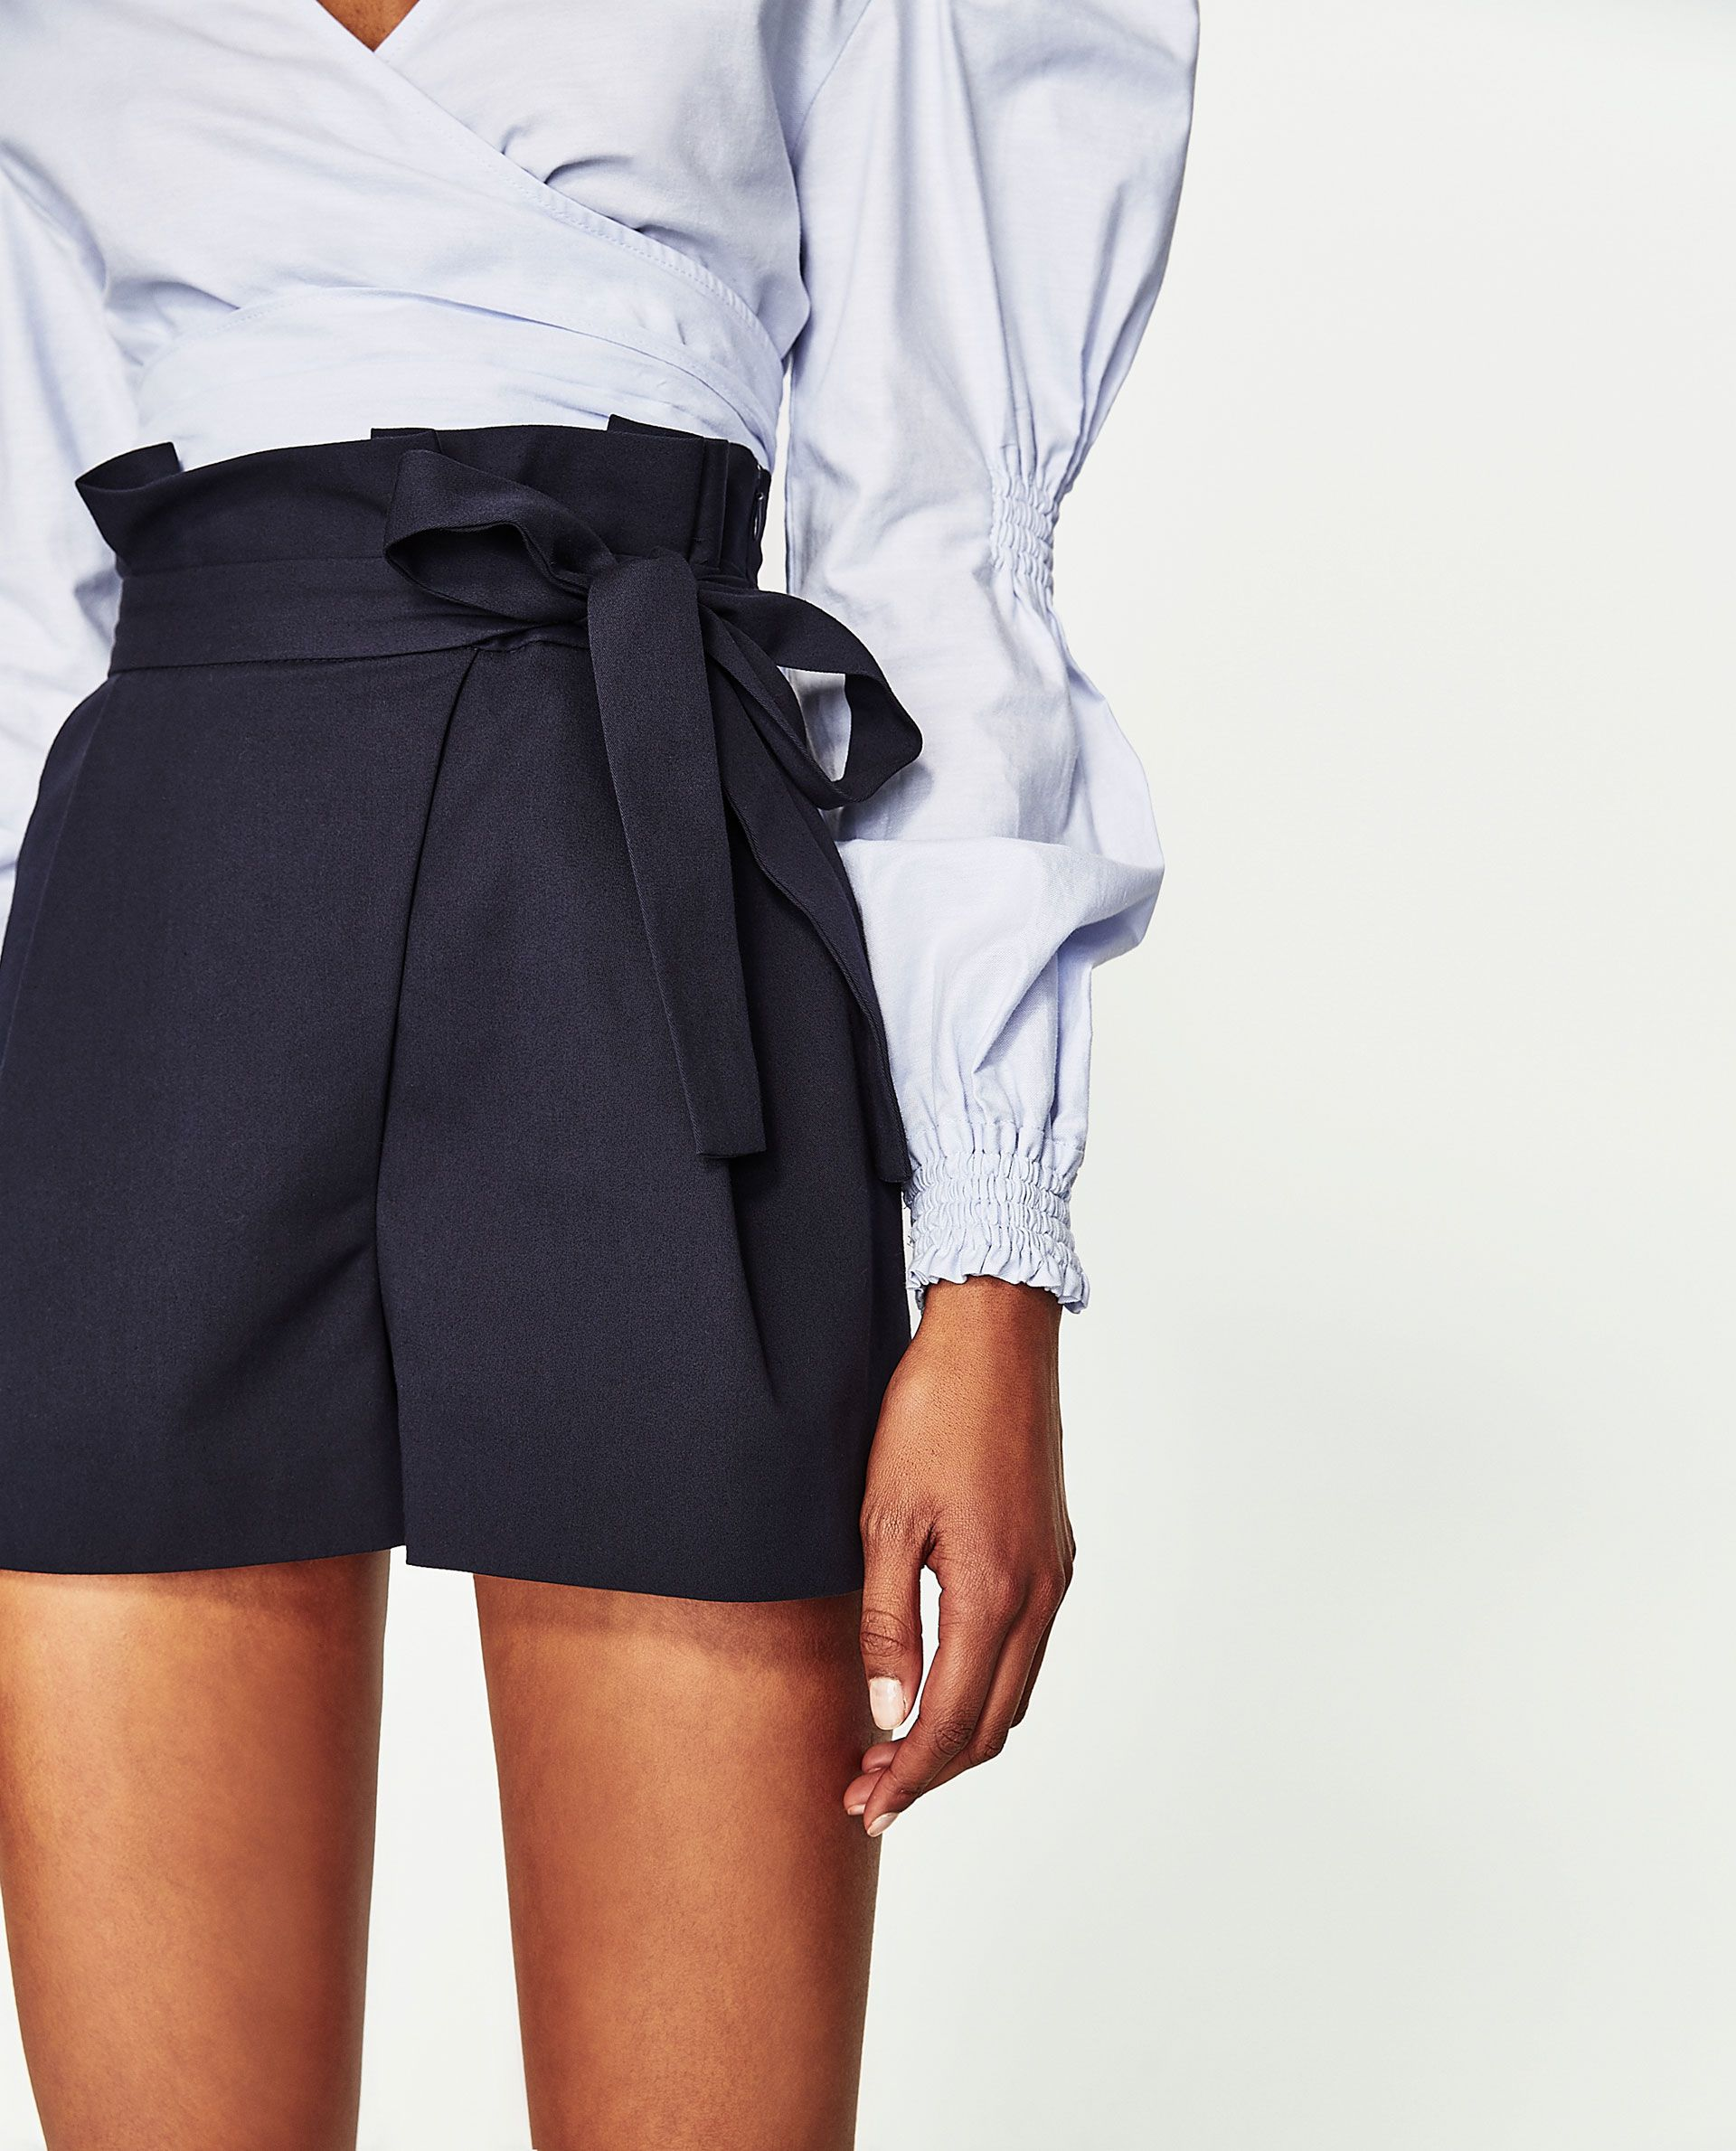 Image 6 of PLEATED BERMUDA SHORTS WITH BOW from Zara  9b0feff91c5